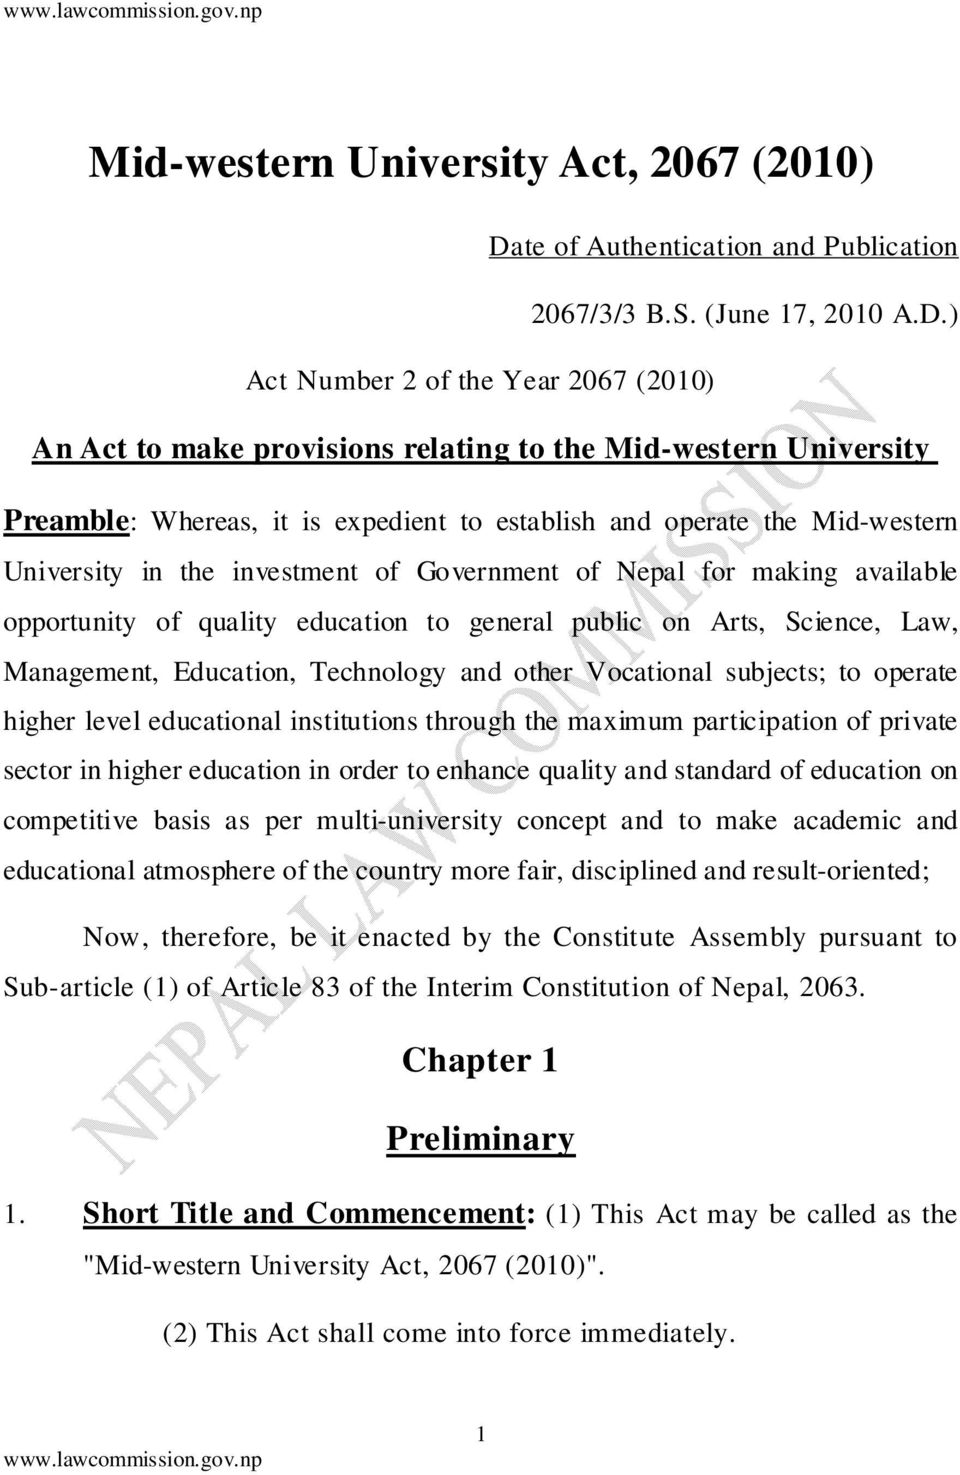 ) Act Number 2 of the Year 2067 (2010) An Act to make provisions relating to the Mid-western University Preamble: Whereas, it is expedient to establish and operate the Mid-western University in the